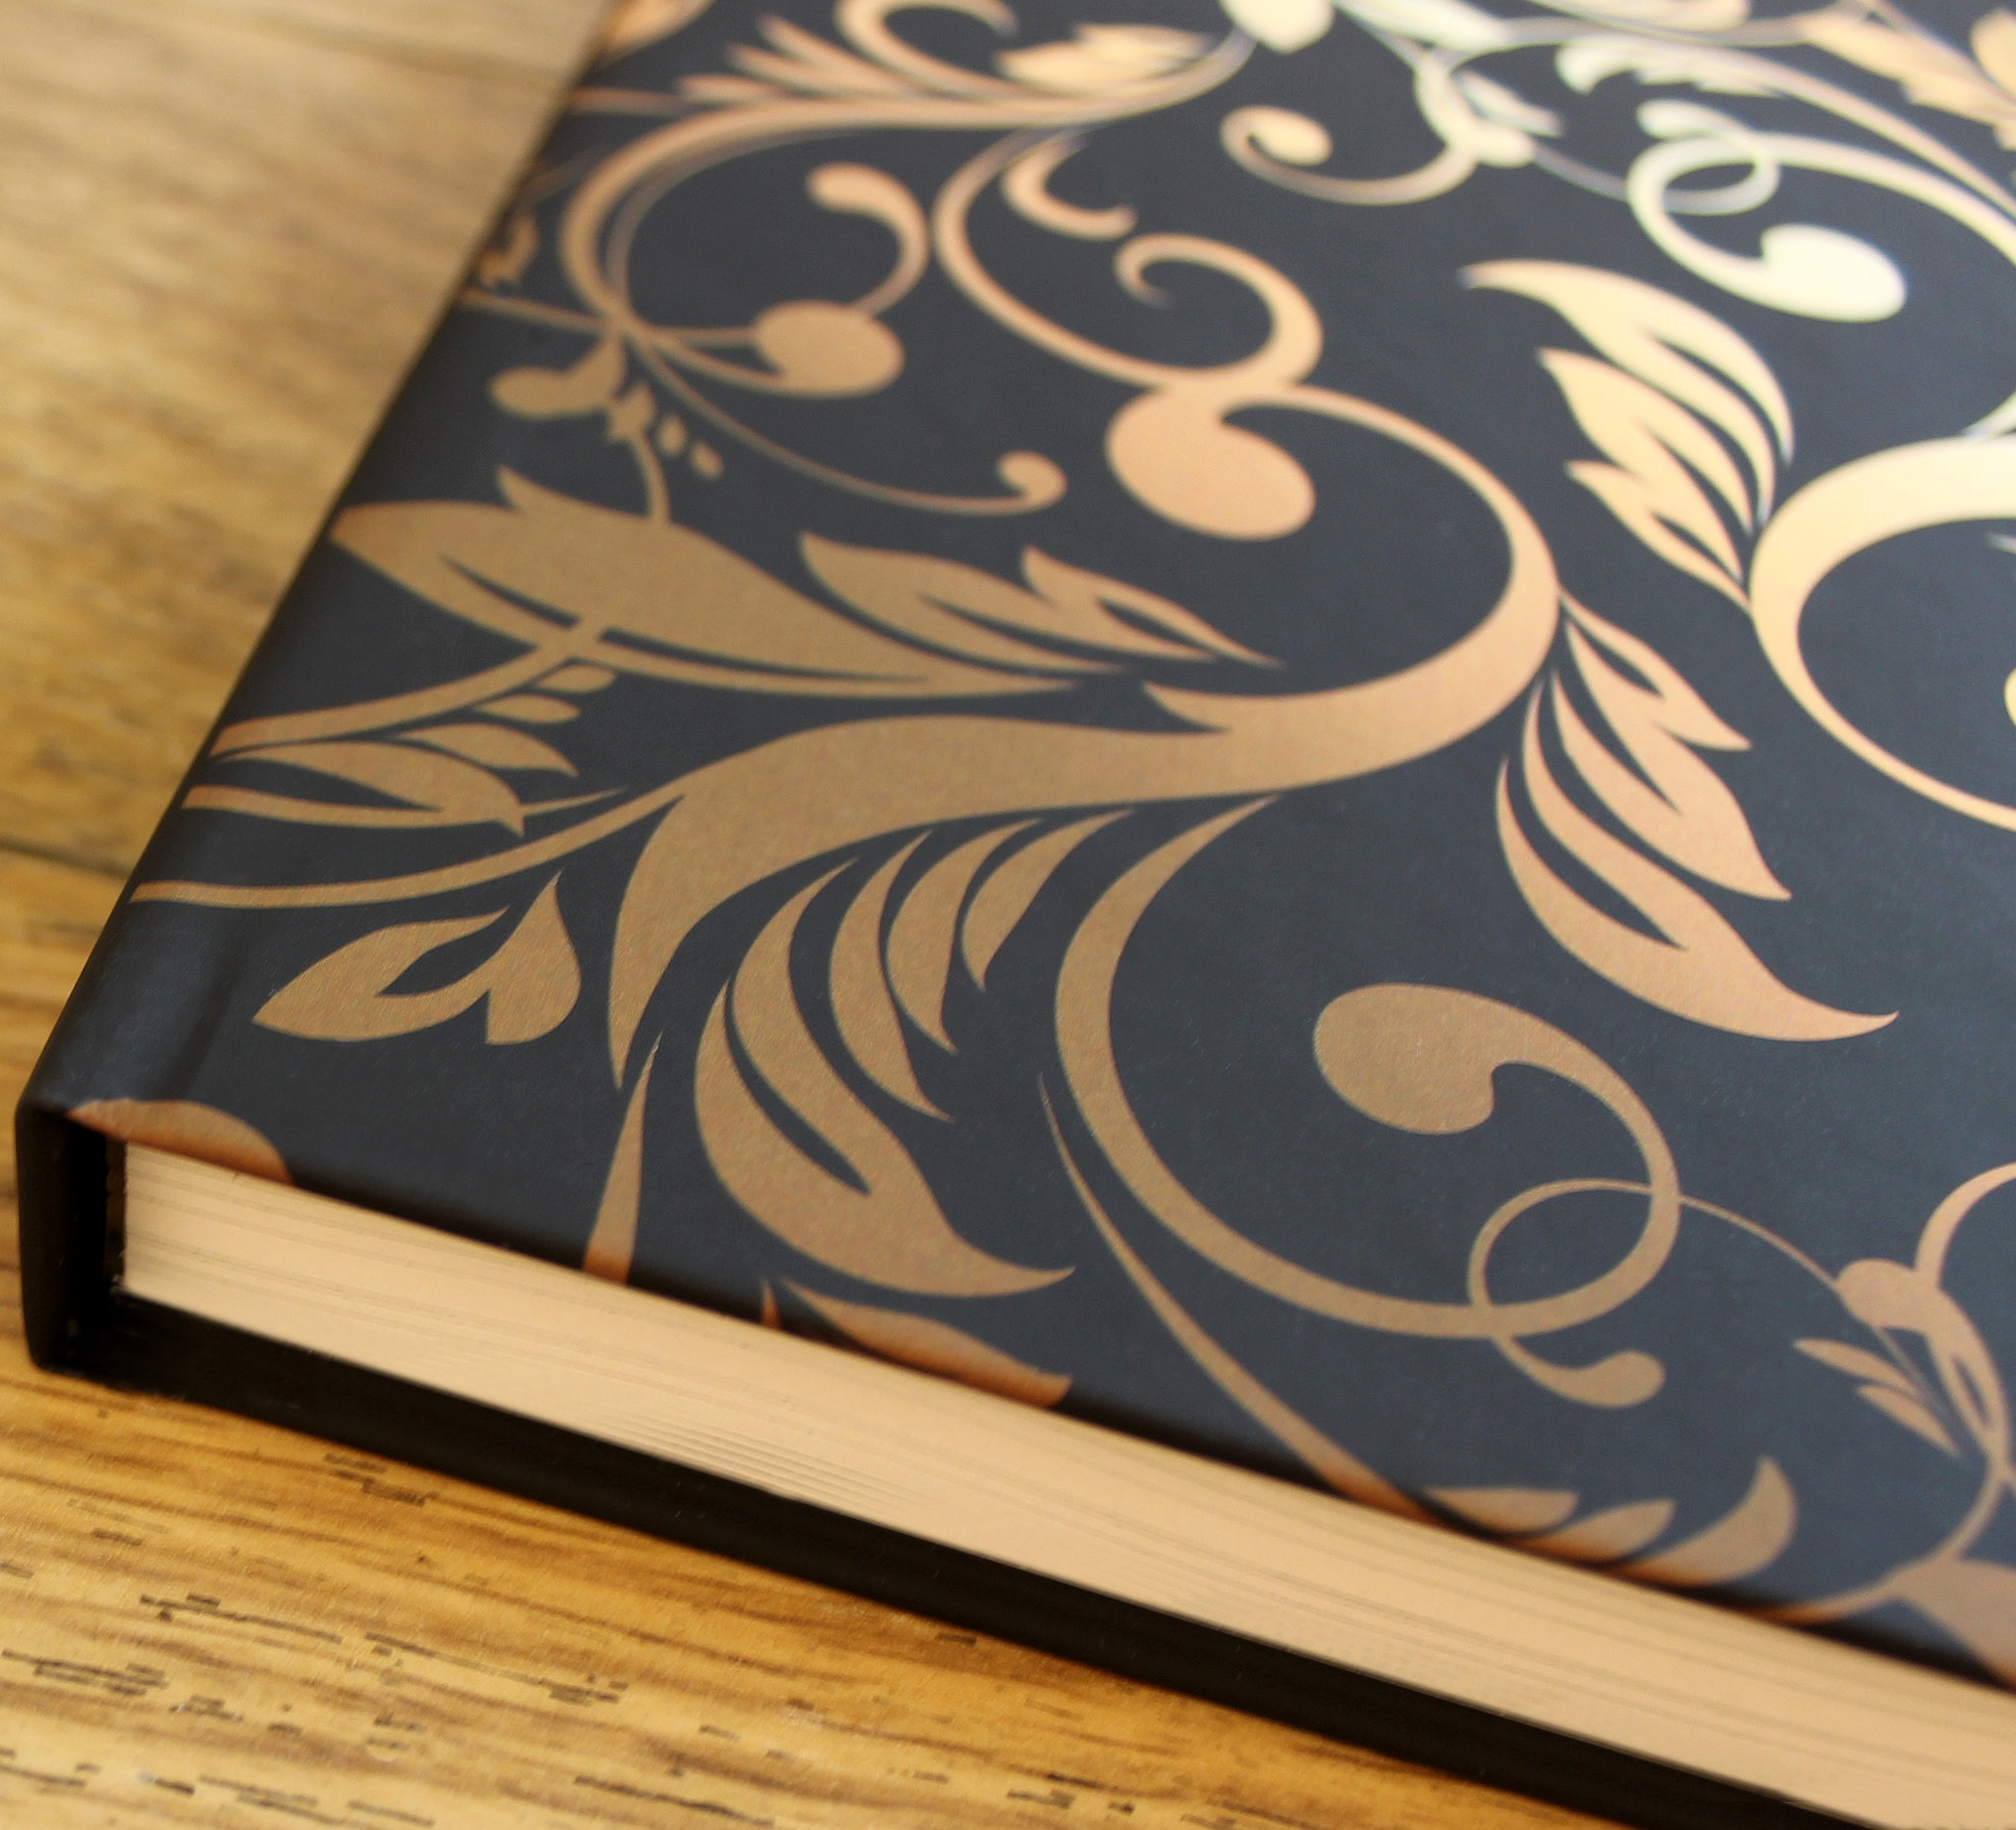 Bespoke case bound poetry book